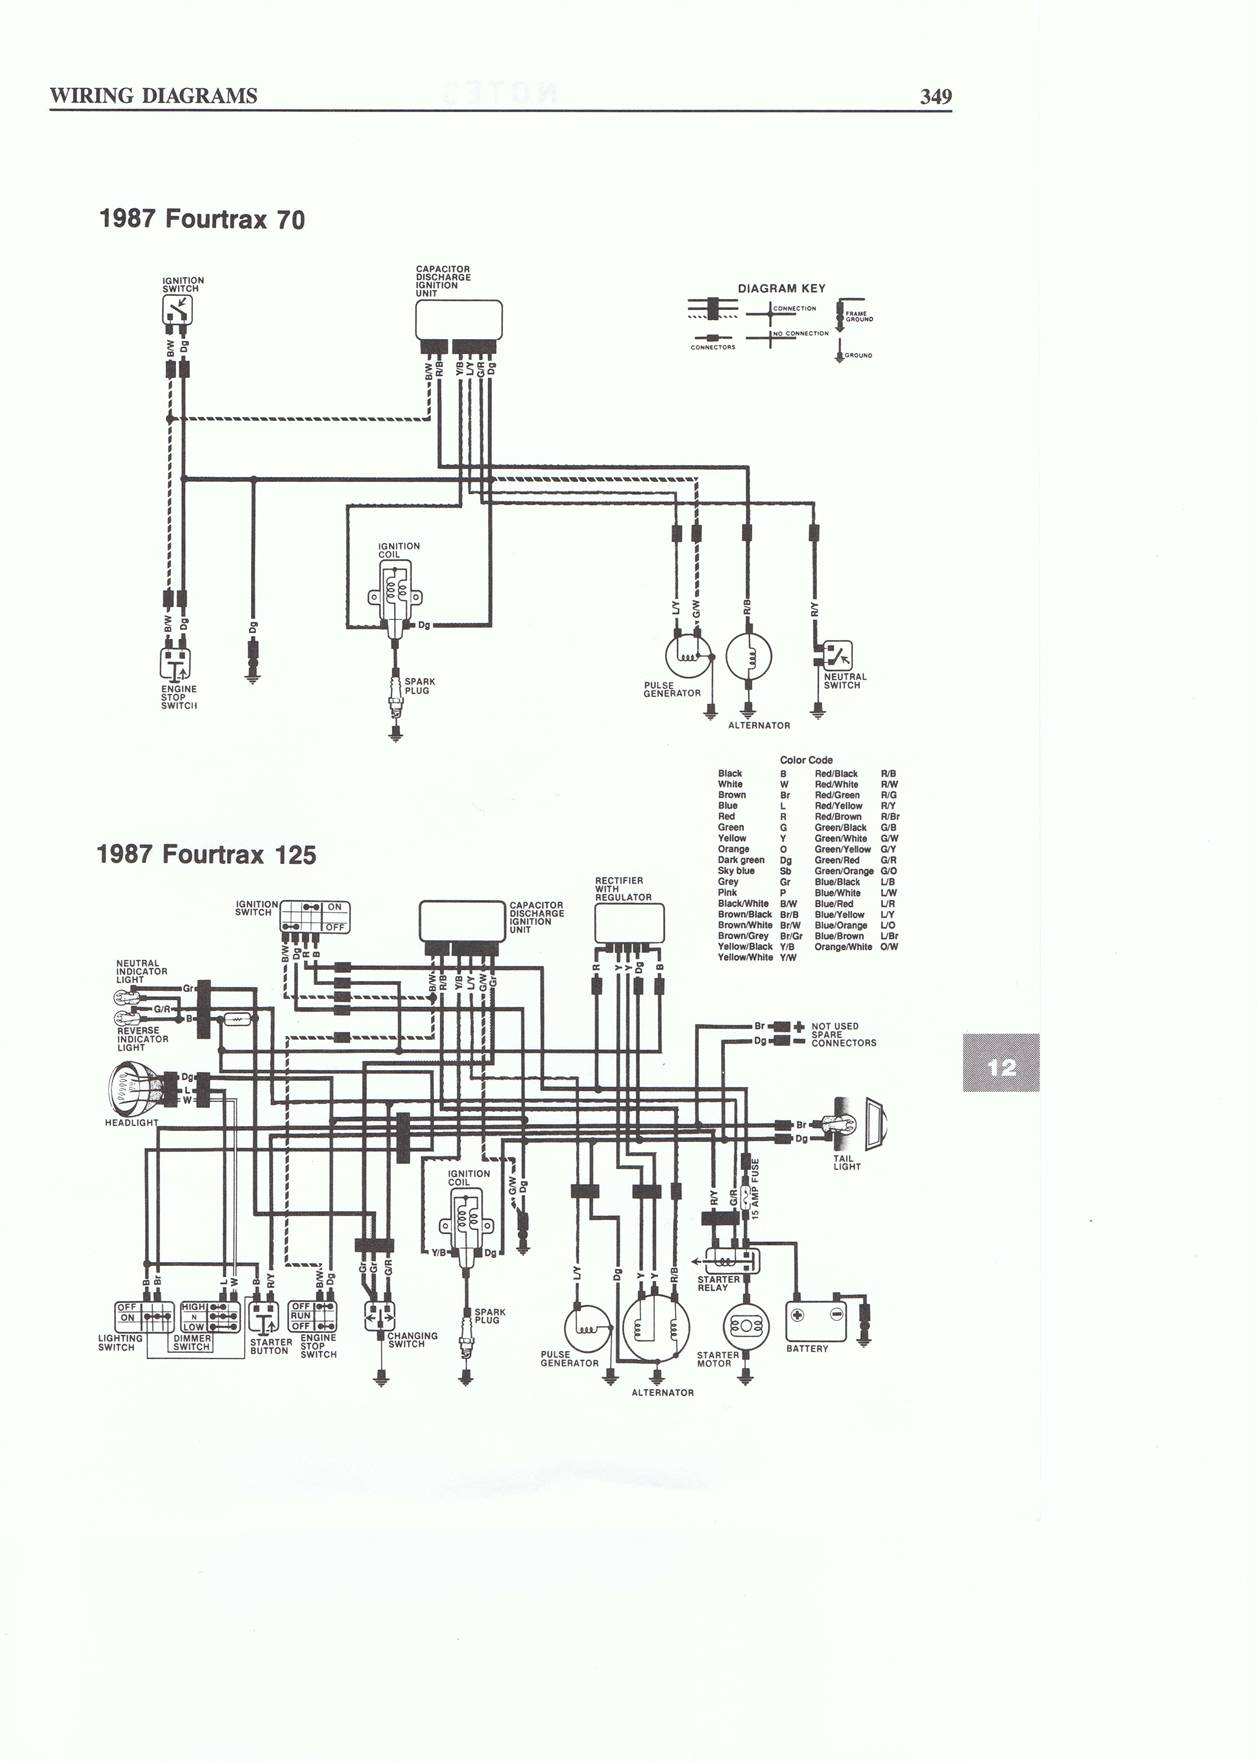 gy6 engine wiring diagram?t=1398725710 gy6 engine wiring diagram 150cc gy6 wiring diagram at gsmx.co